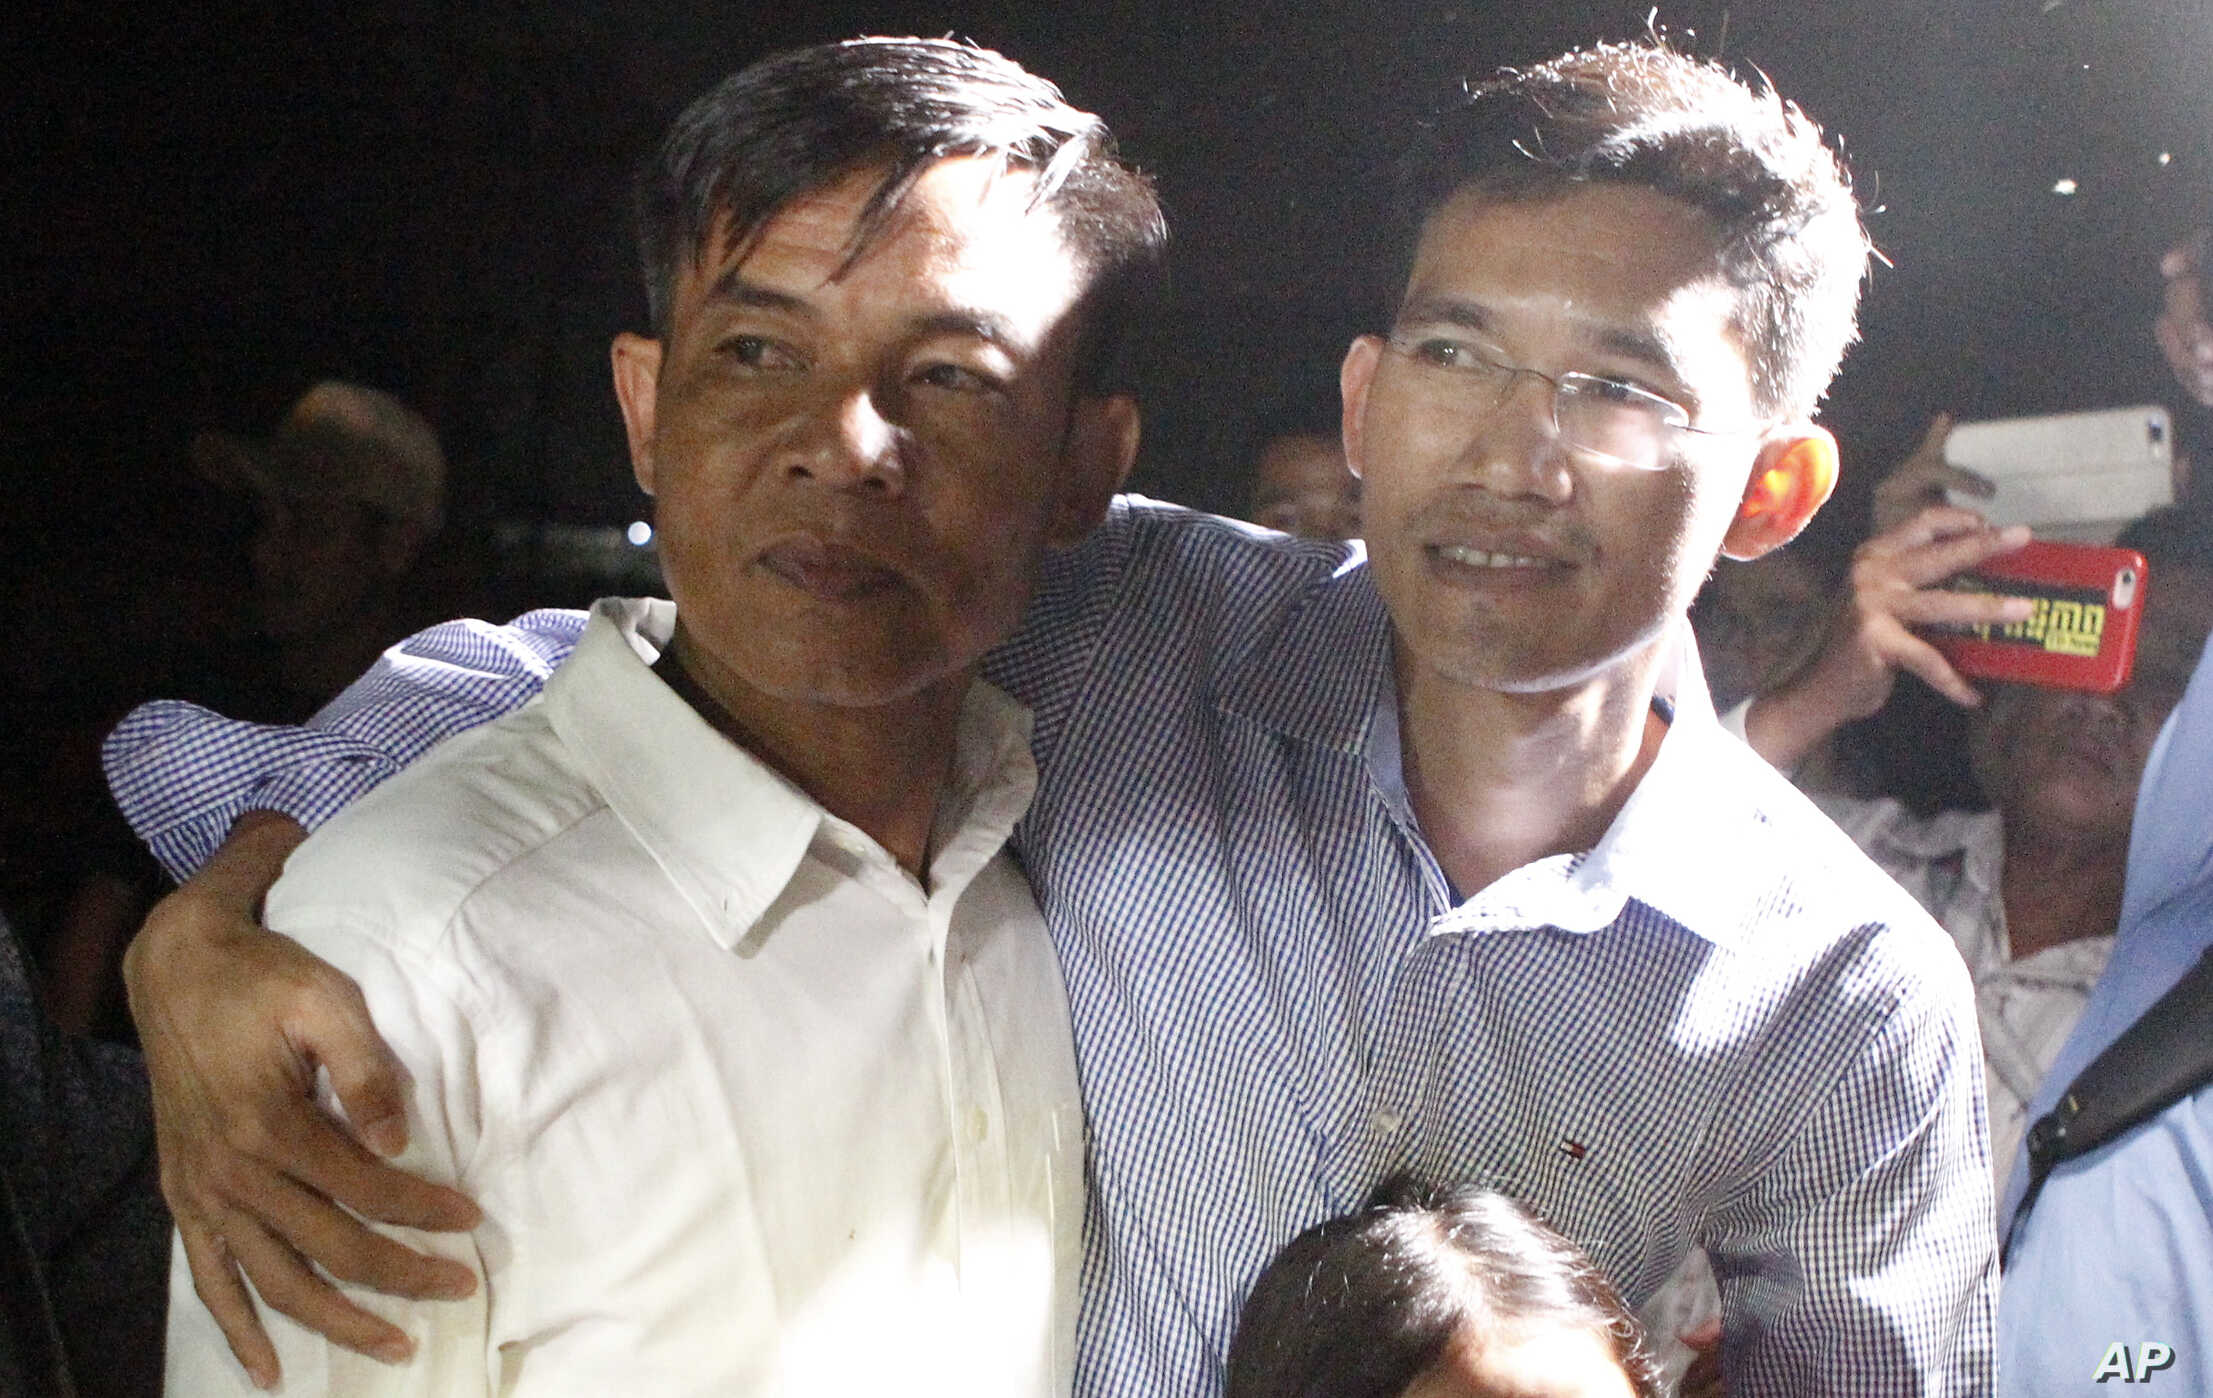 Two former Radio Free Asia reporters Uon Chhin, left, and Yeang Socheamet, right, hold together after they walk outside the main prison of Prey Sar at the outskirt of Phnom Penh, Cambodia, Aug. 21, 2018.